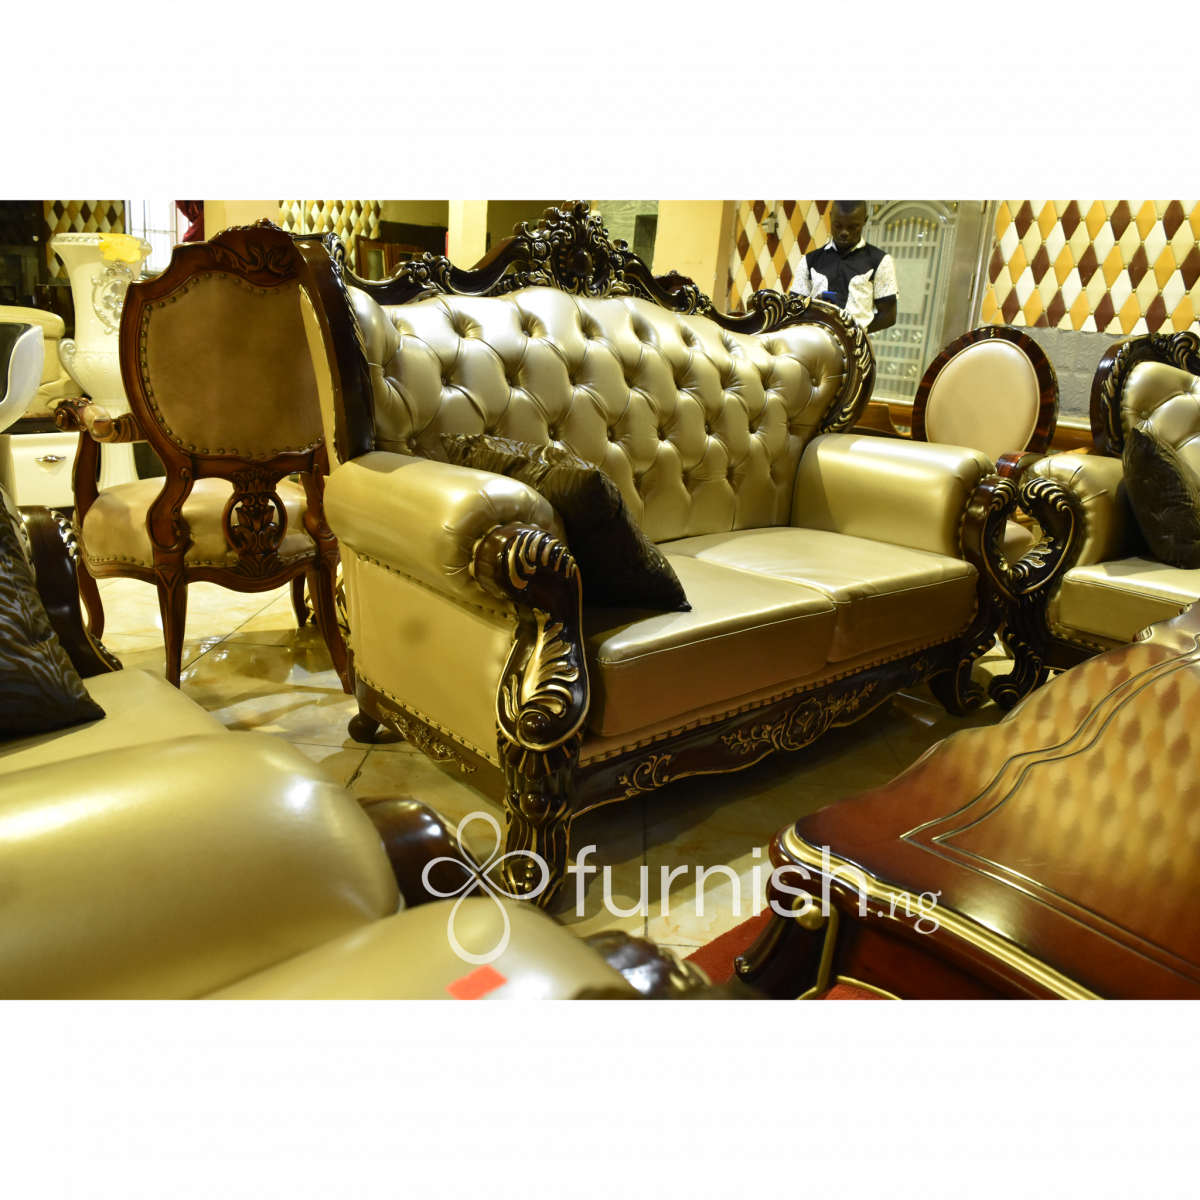 Royal drawing sofa. Luxury with animal skin